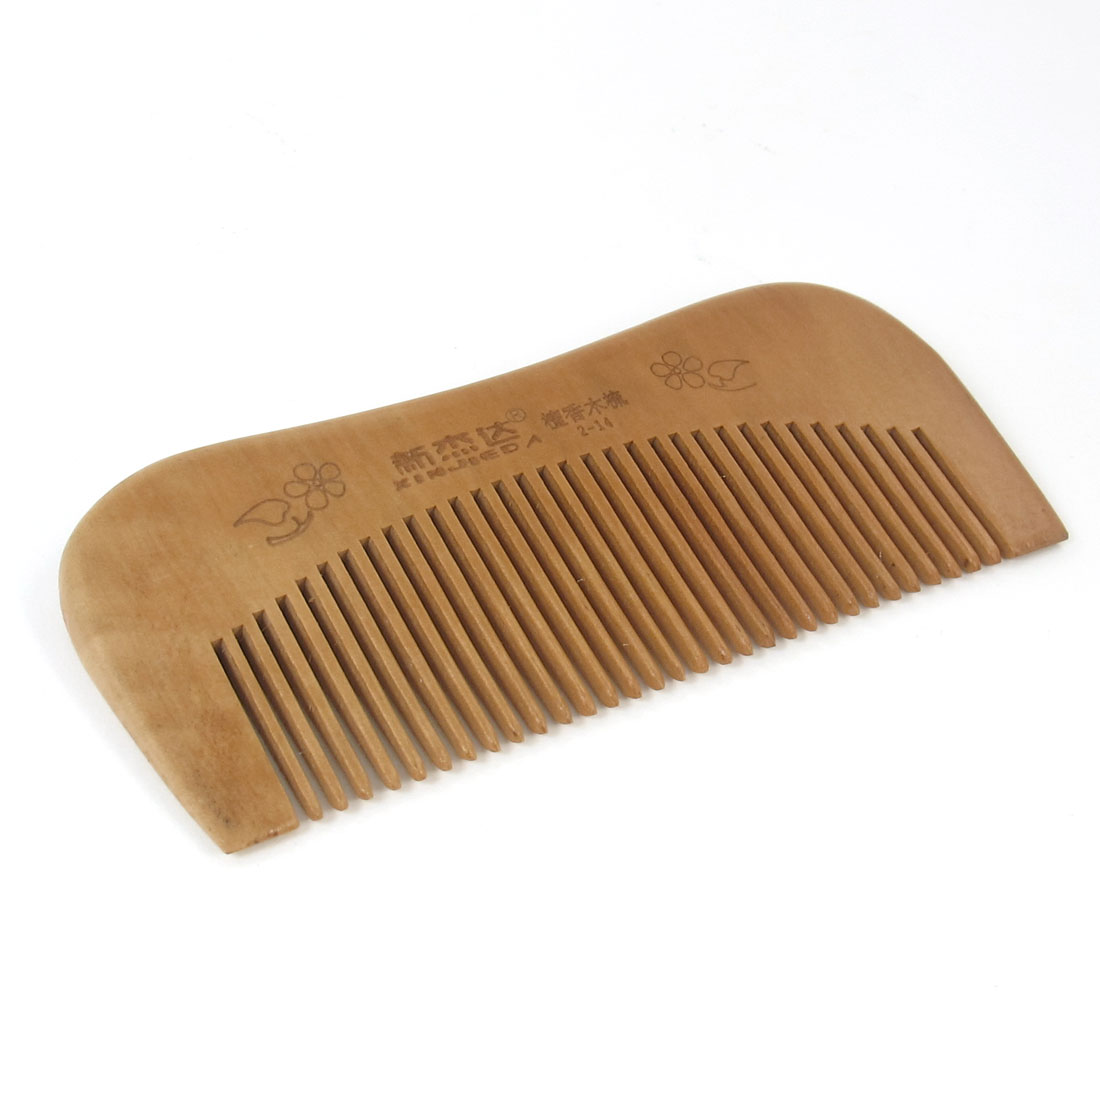 "Brown Rectangle Natural Wood Wooden Hair Care Comb 4.6"" Long"